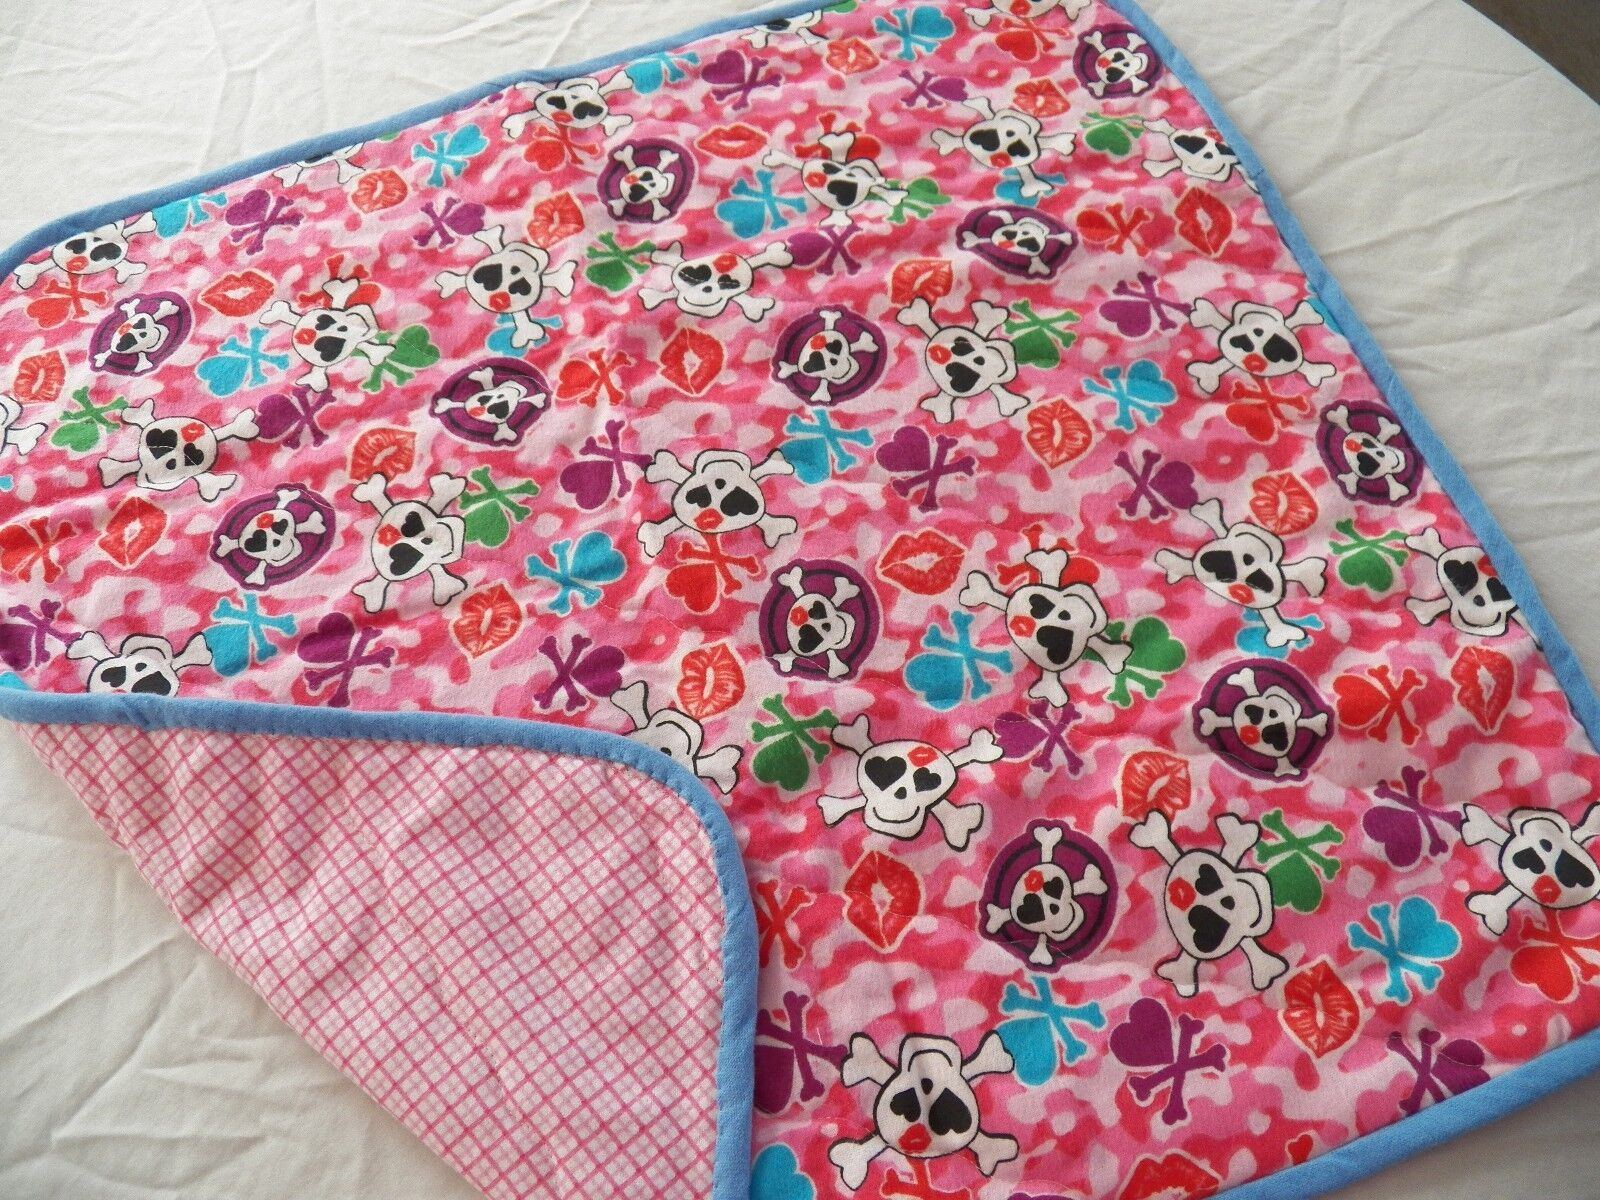 BABY CHANGING PAD Portable Diaper Travel Mat Cotton Washable Padded Handmade NEW 24